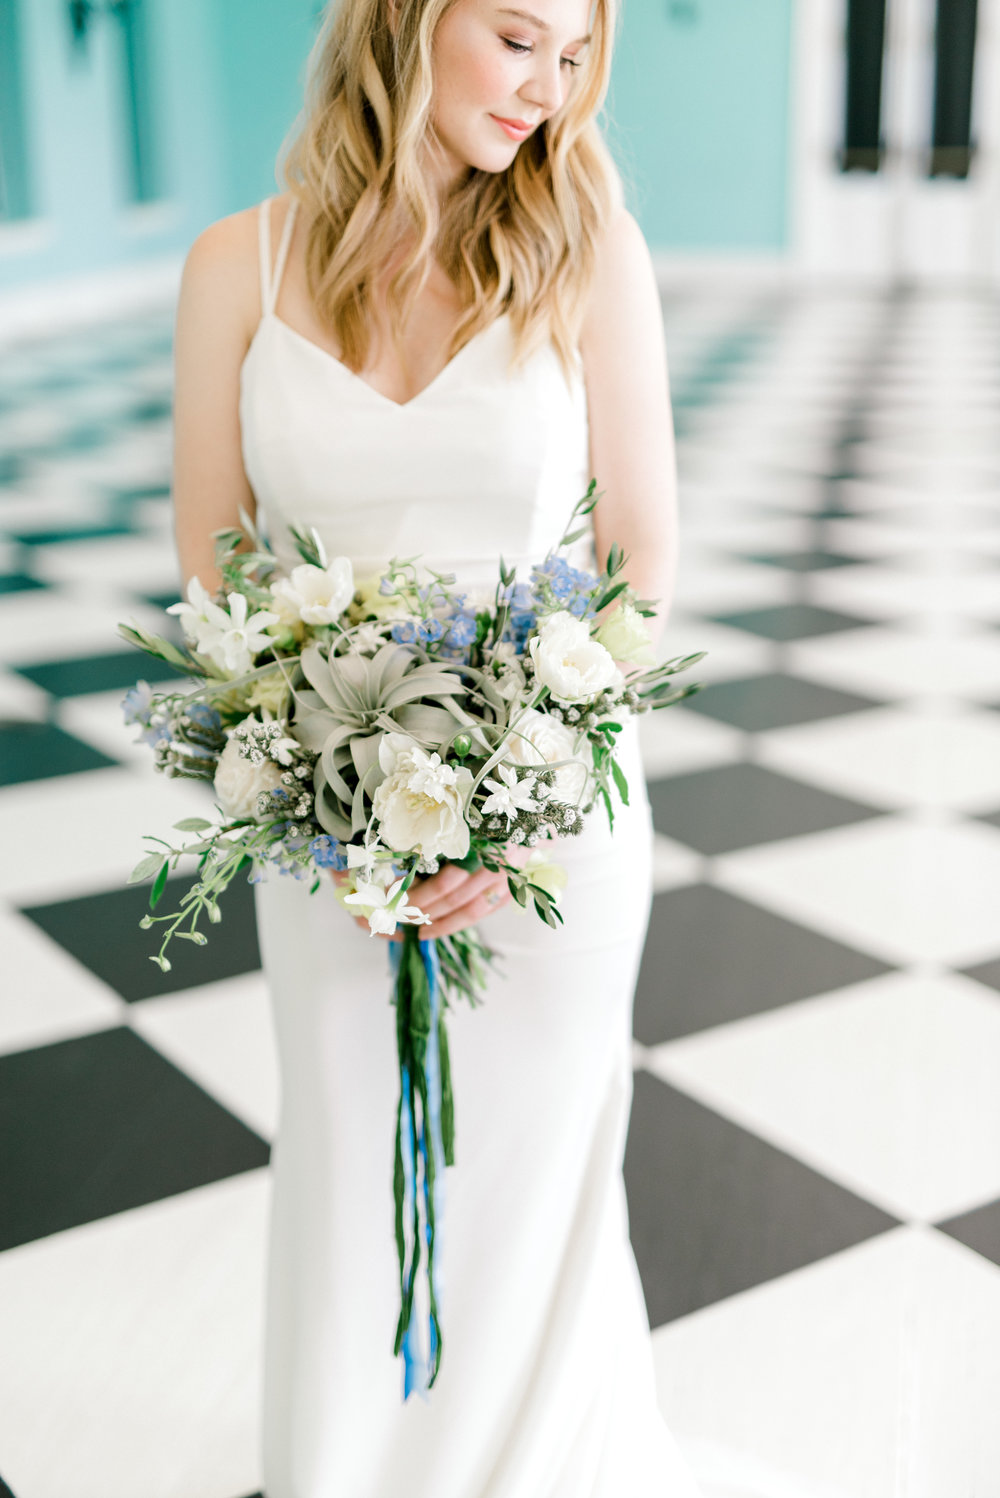 haley-richter-photography-clover-event-co-cape-may-new-jersey-wedding-elopement-at-congress-hall-sea-glass-inspired-031.jpg